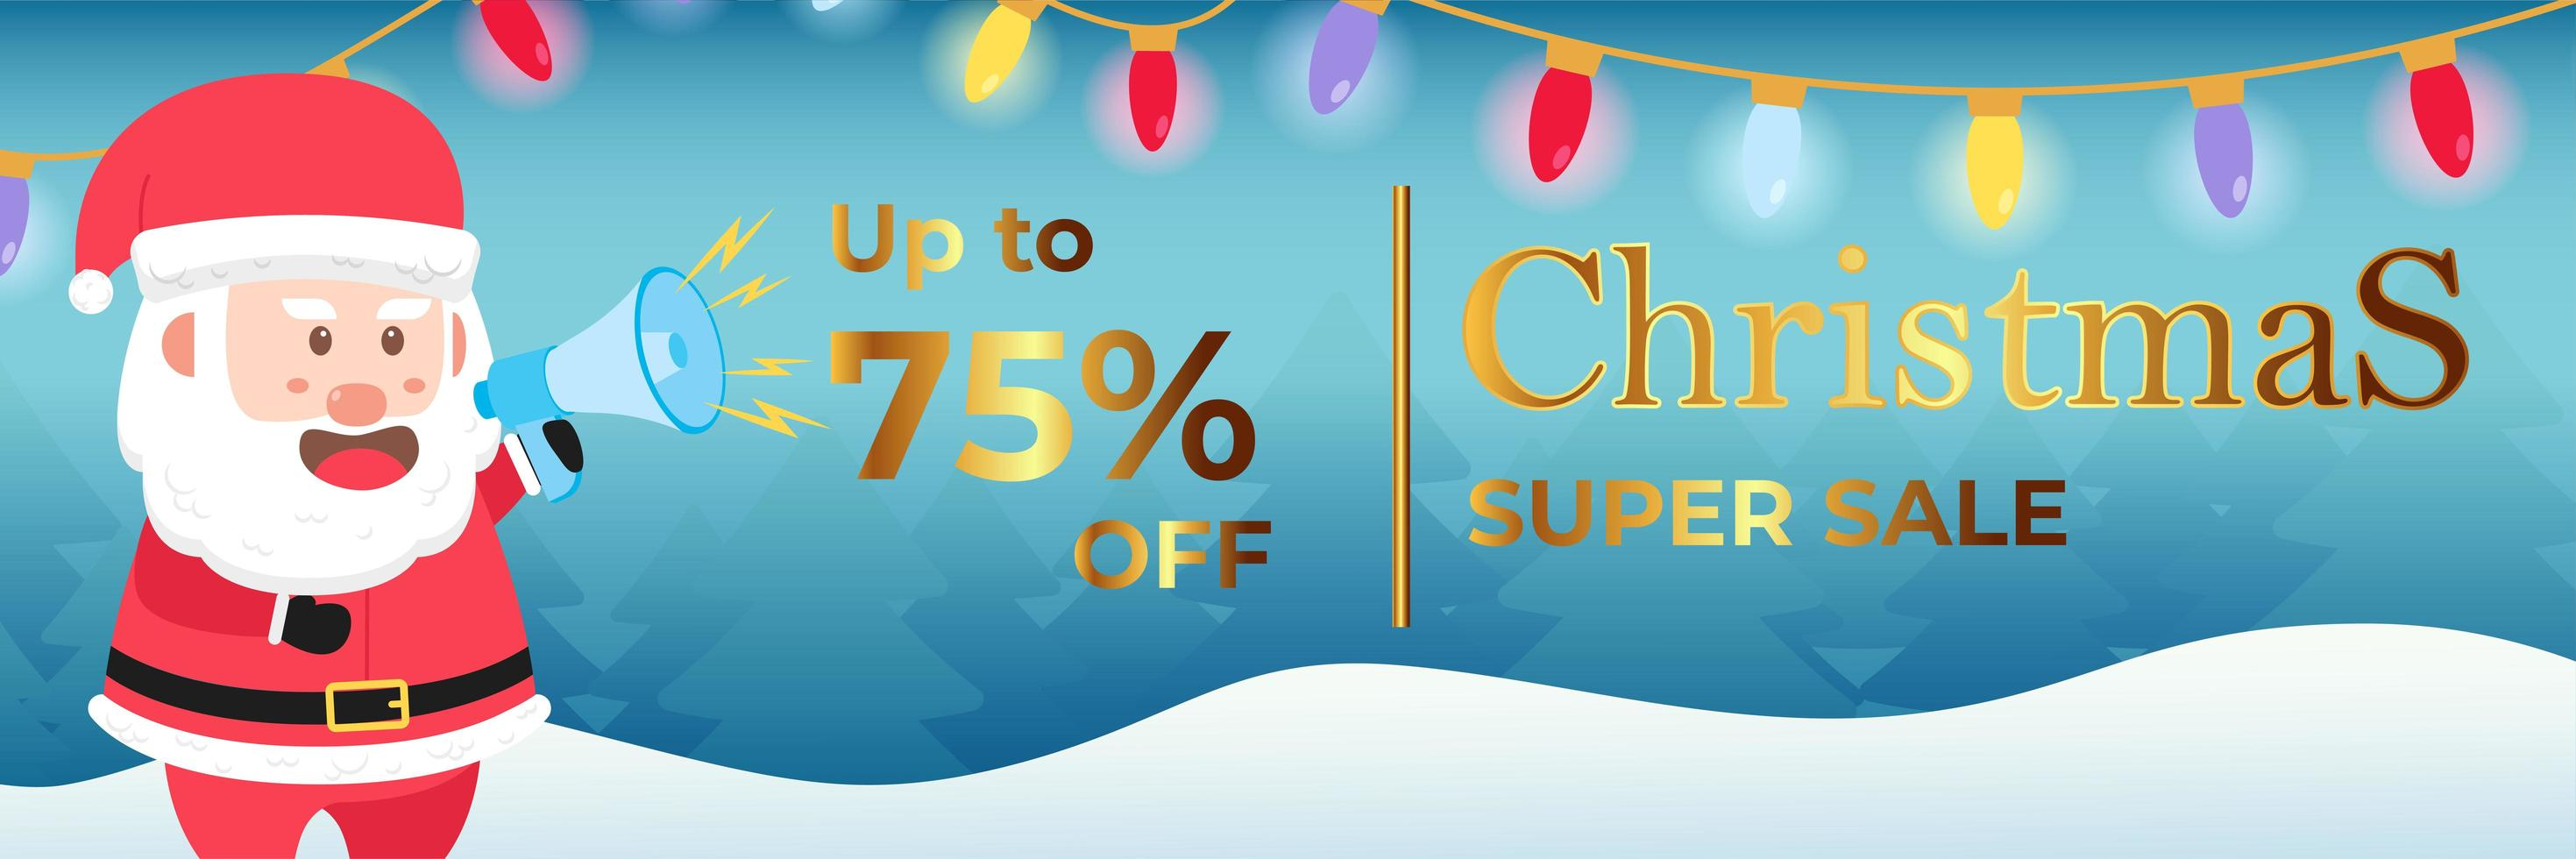 Christmas Banner Super Sale Up To 75 percent vector